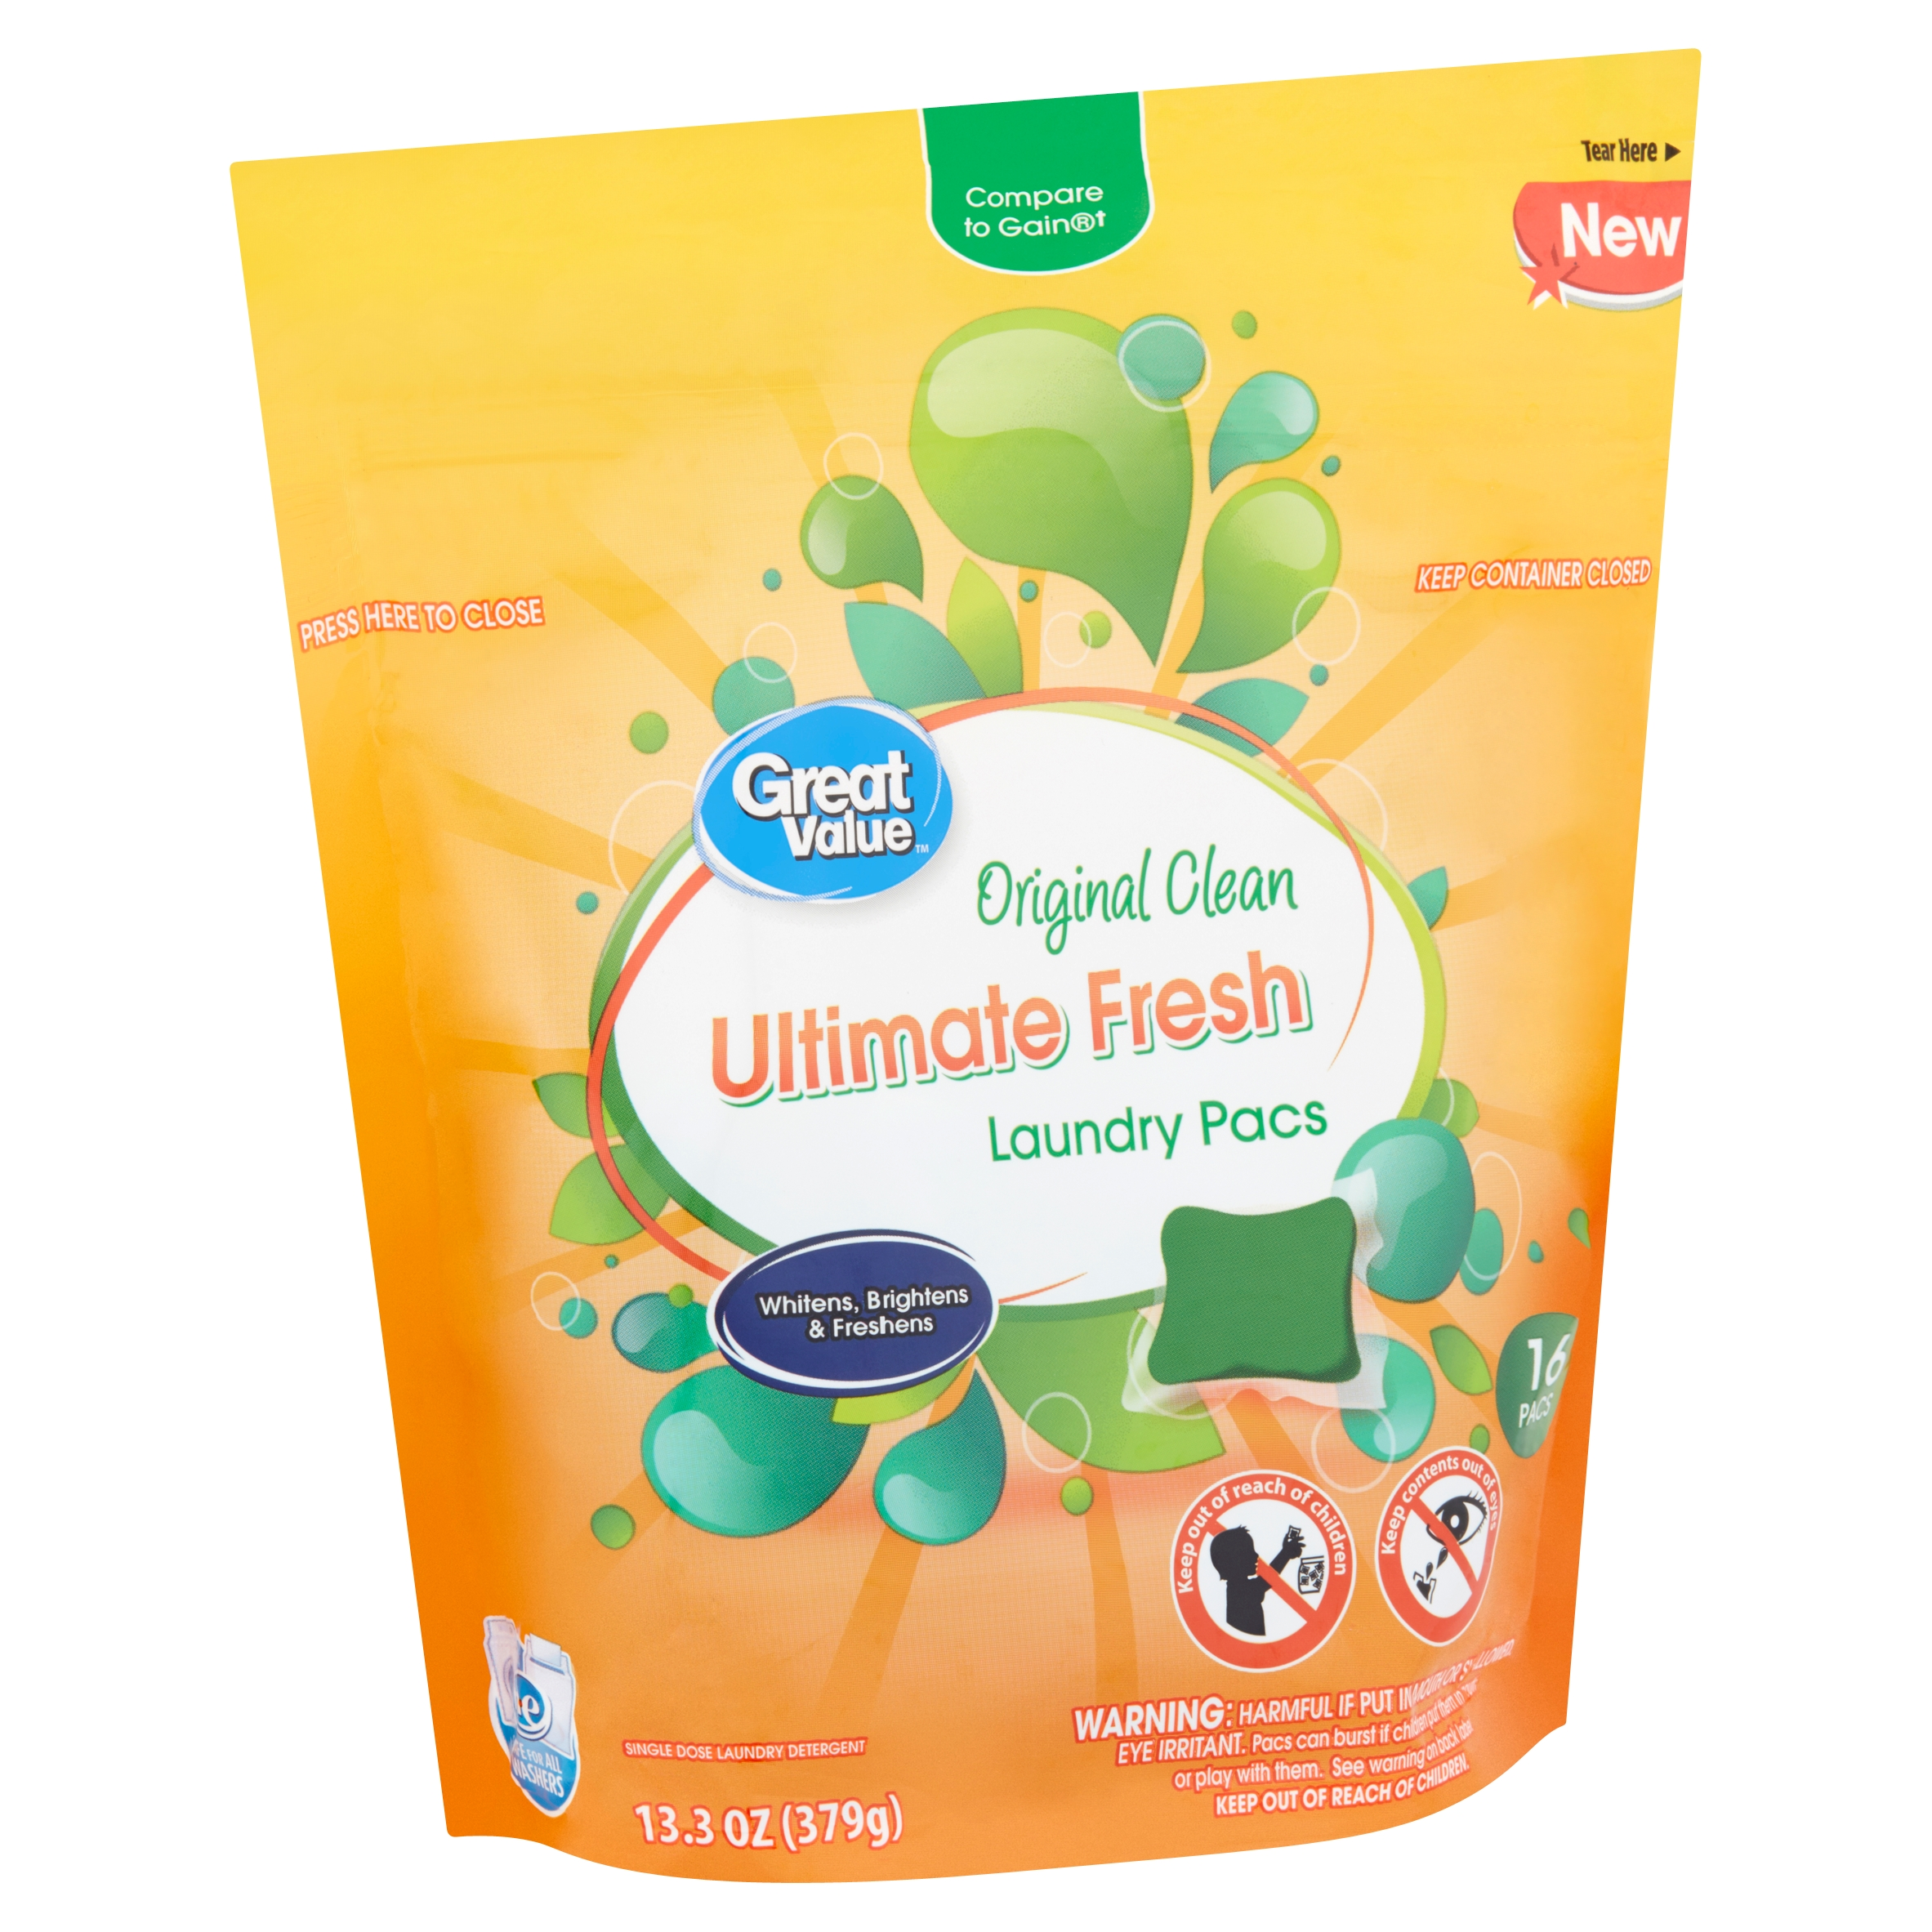 Great Value Ultimate Fresh Original Clean Laundry Pacs, 16 count, 13.3 oz